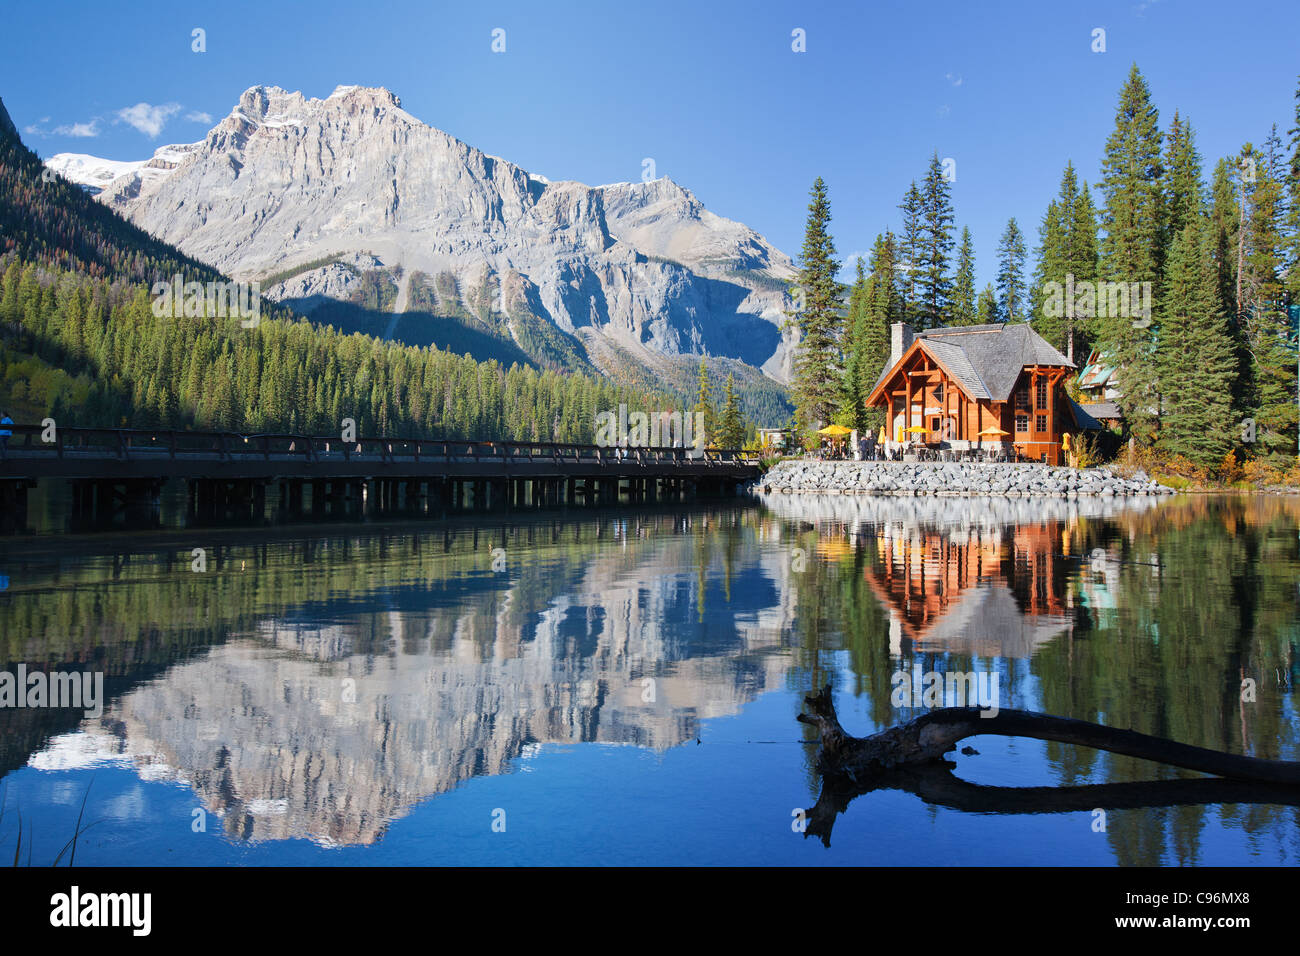 Emerald Lake in Alberta, Canadian Rockies - Stock Image